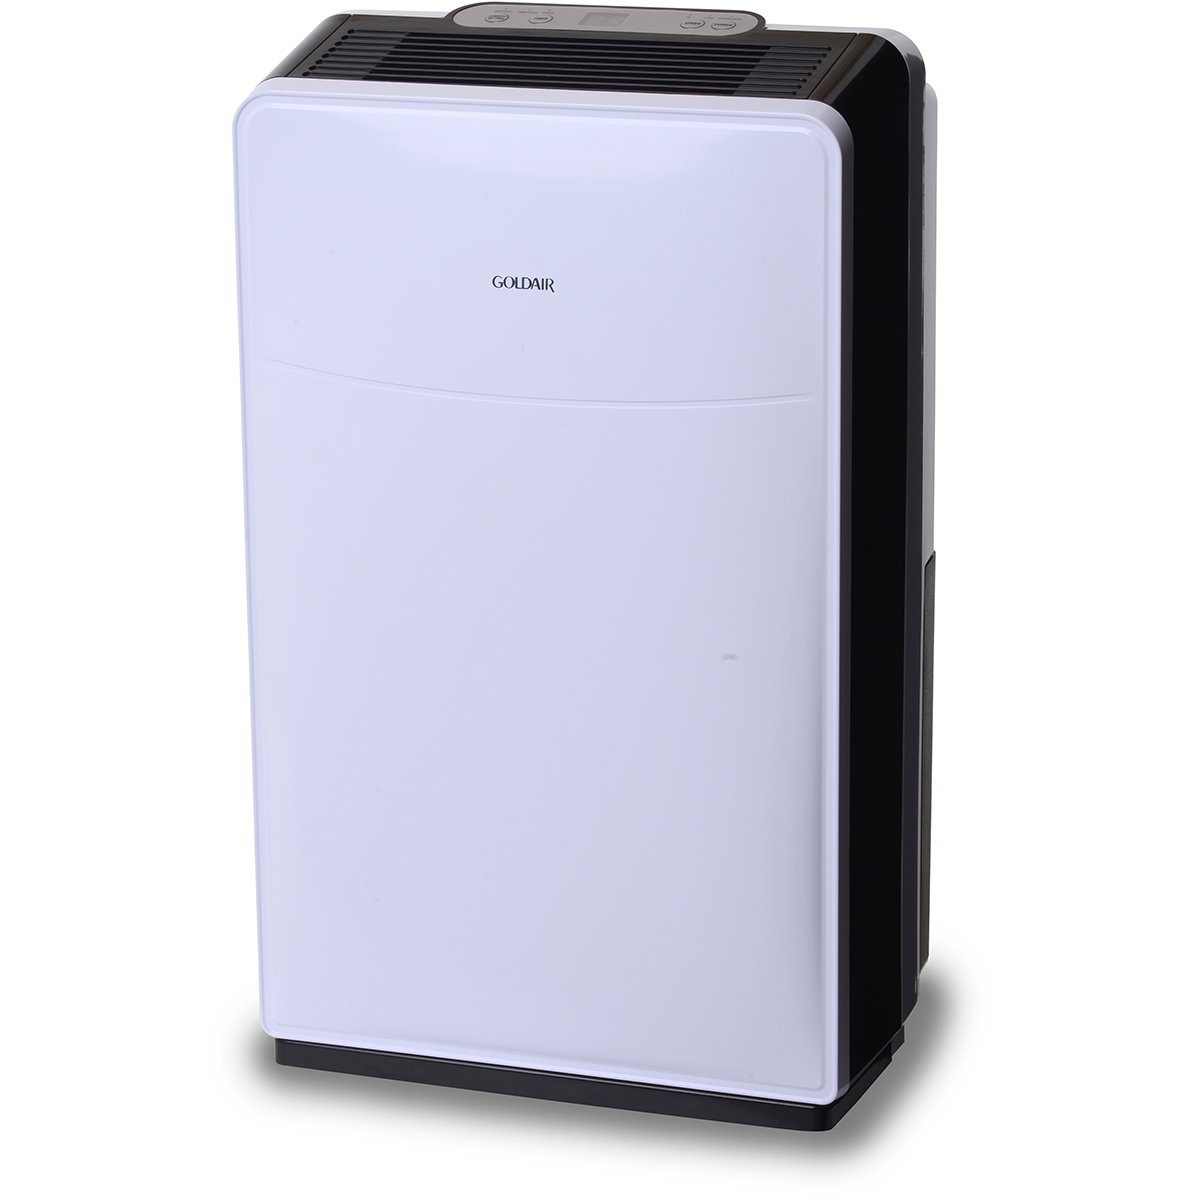 Goldair GD280 Dehumidifier image